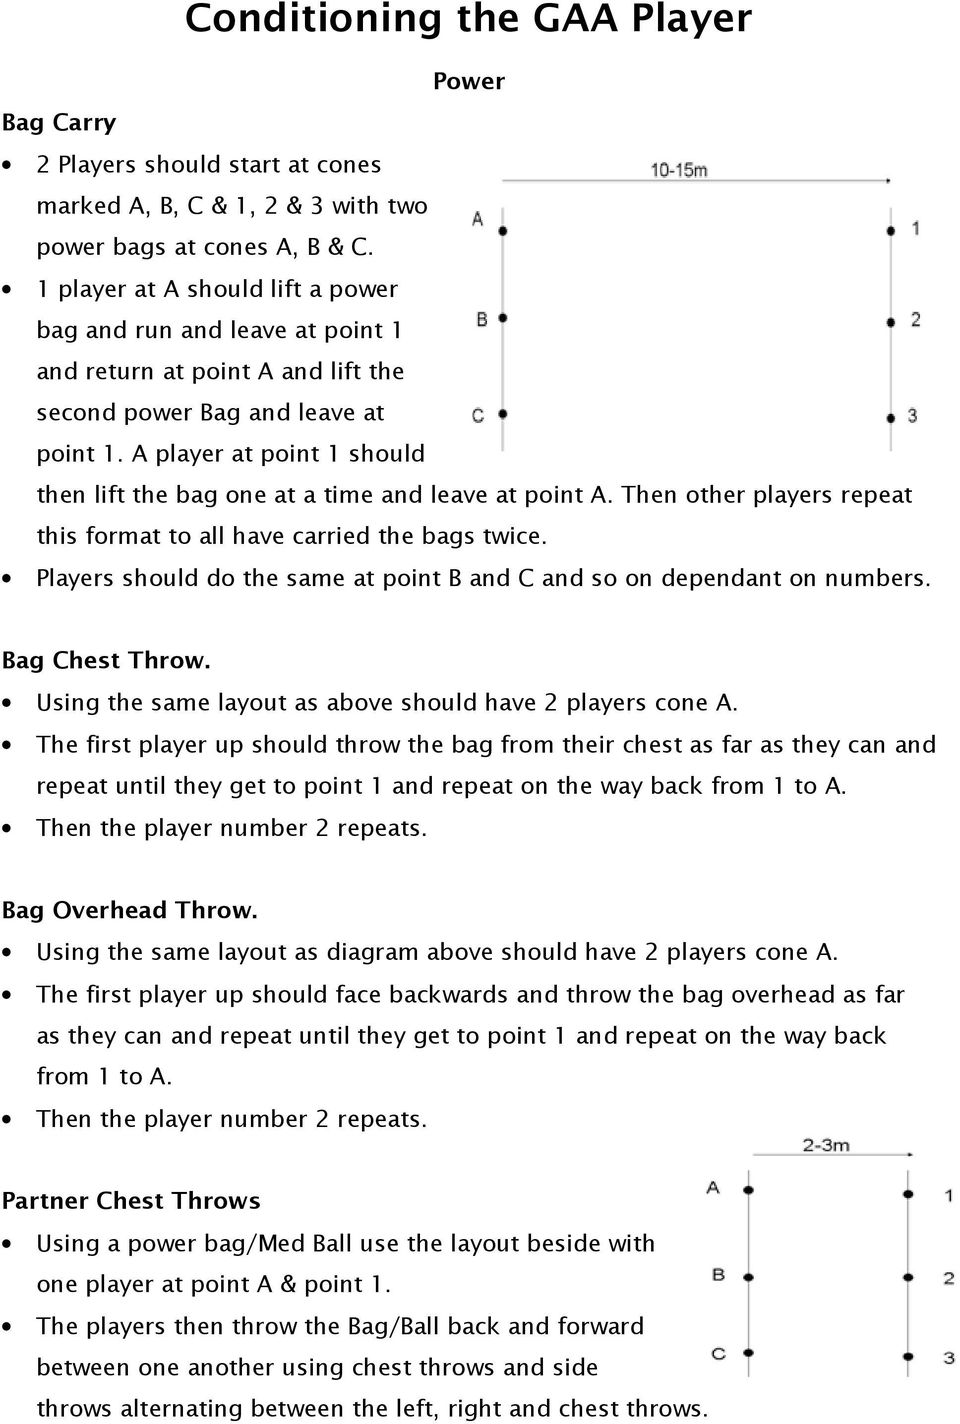 A player at point 1 should then lift the bag one at a time and leave at point A. Then other players repeat this format to all have carried the bags twice.